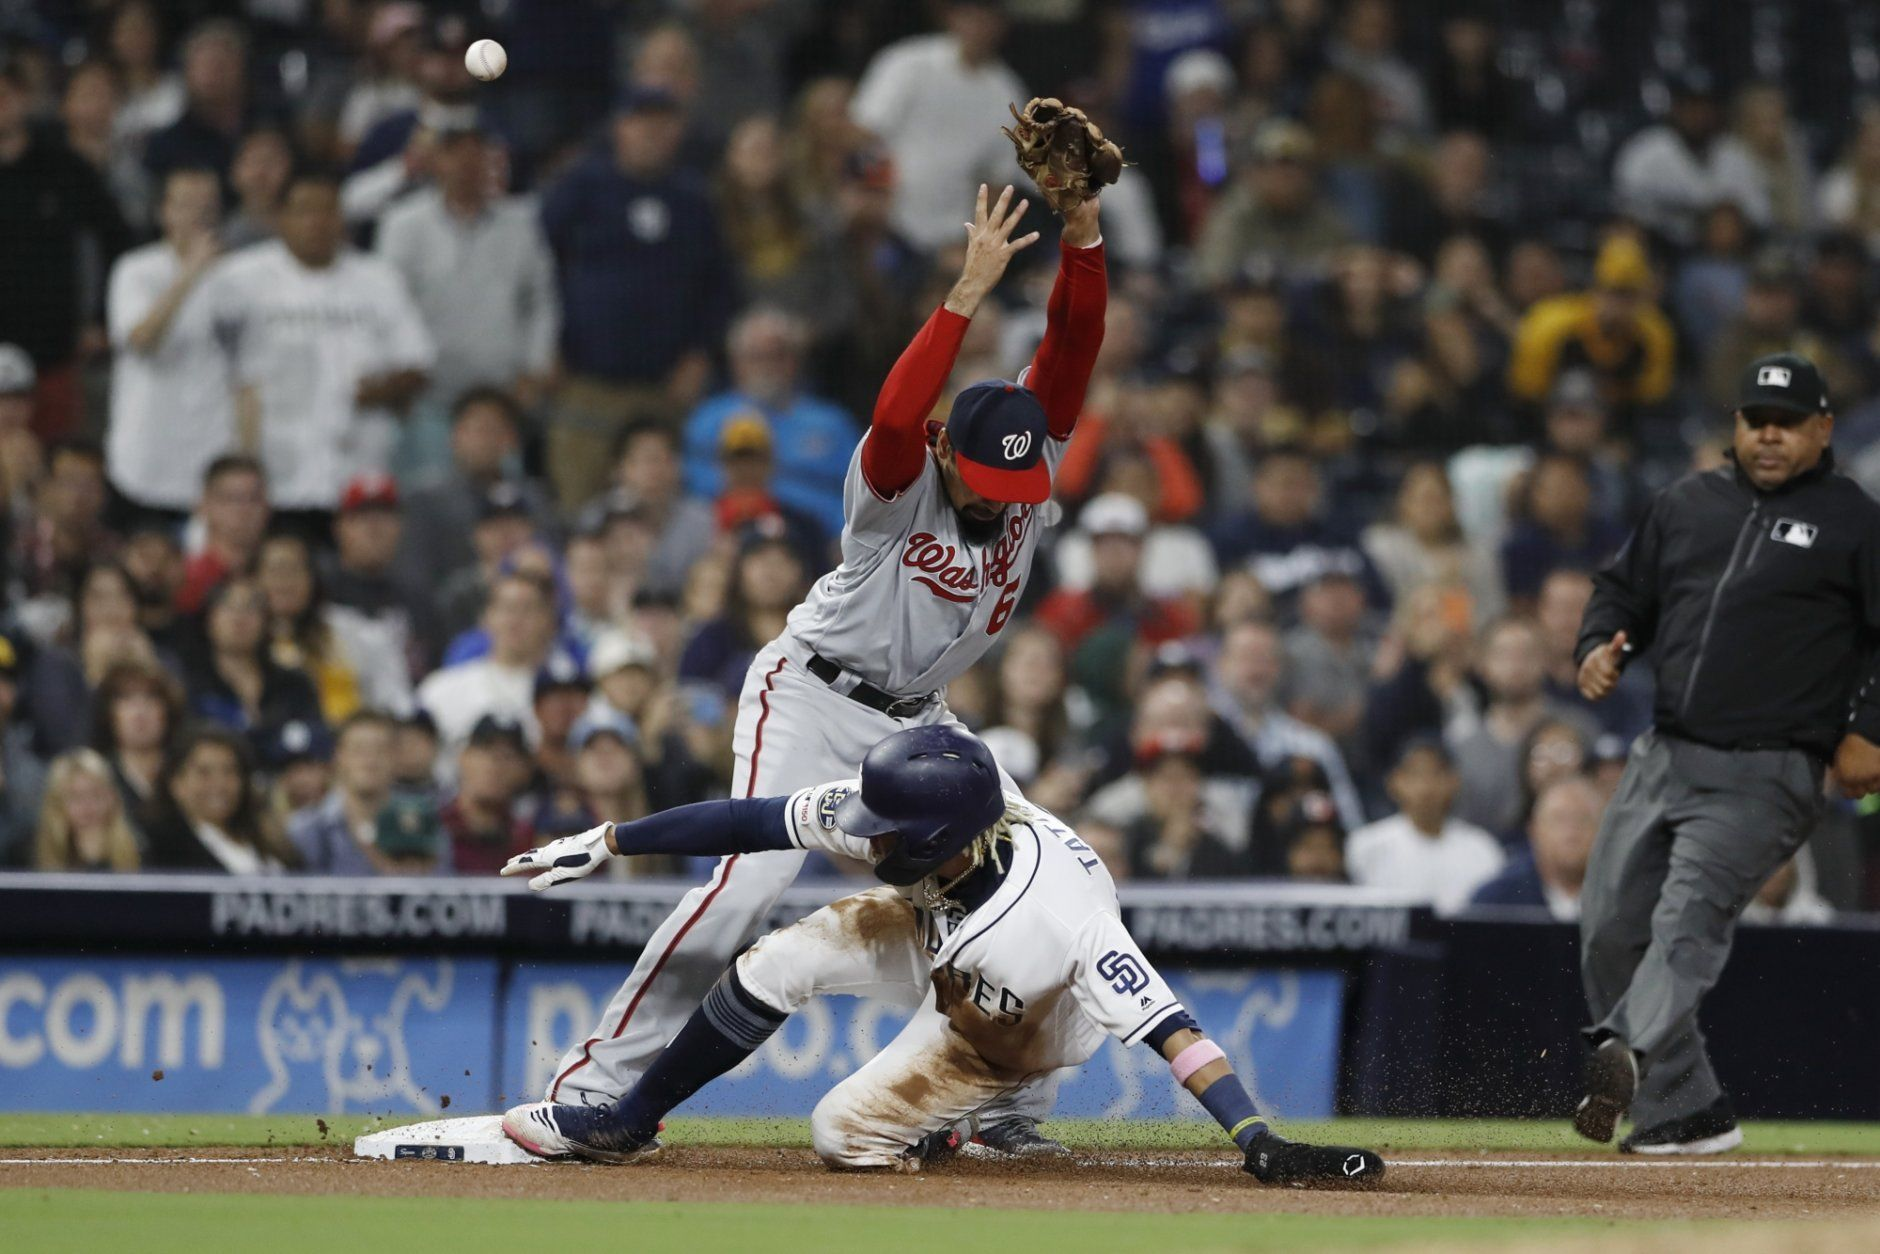 San Diego Padres' Fernando Tatis Jr., below, slides in safely to third on a grounder by Manny Machado, as Washington Nationals third baseman Anthony Rendon can't make the catch during the eighth inning of a baseball game Thursday, June 6, 2019, in San Diego. Tatis scored on the play, advancing on the error by Rendon. Manuel Margot also scored. (AP Photo/Gregory Bull)